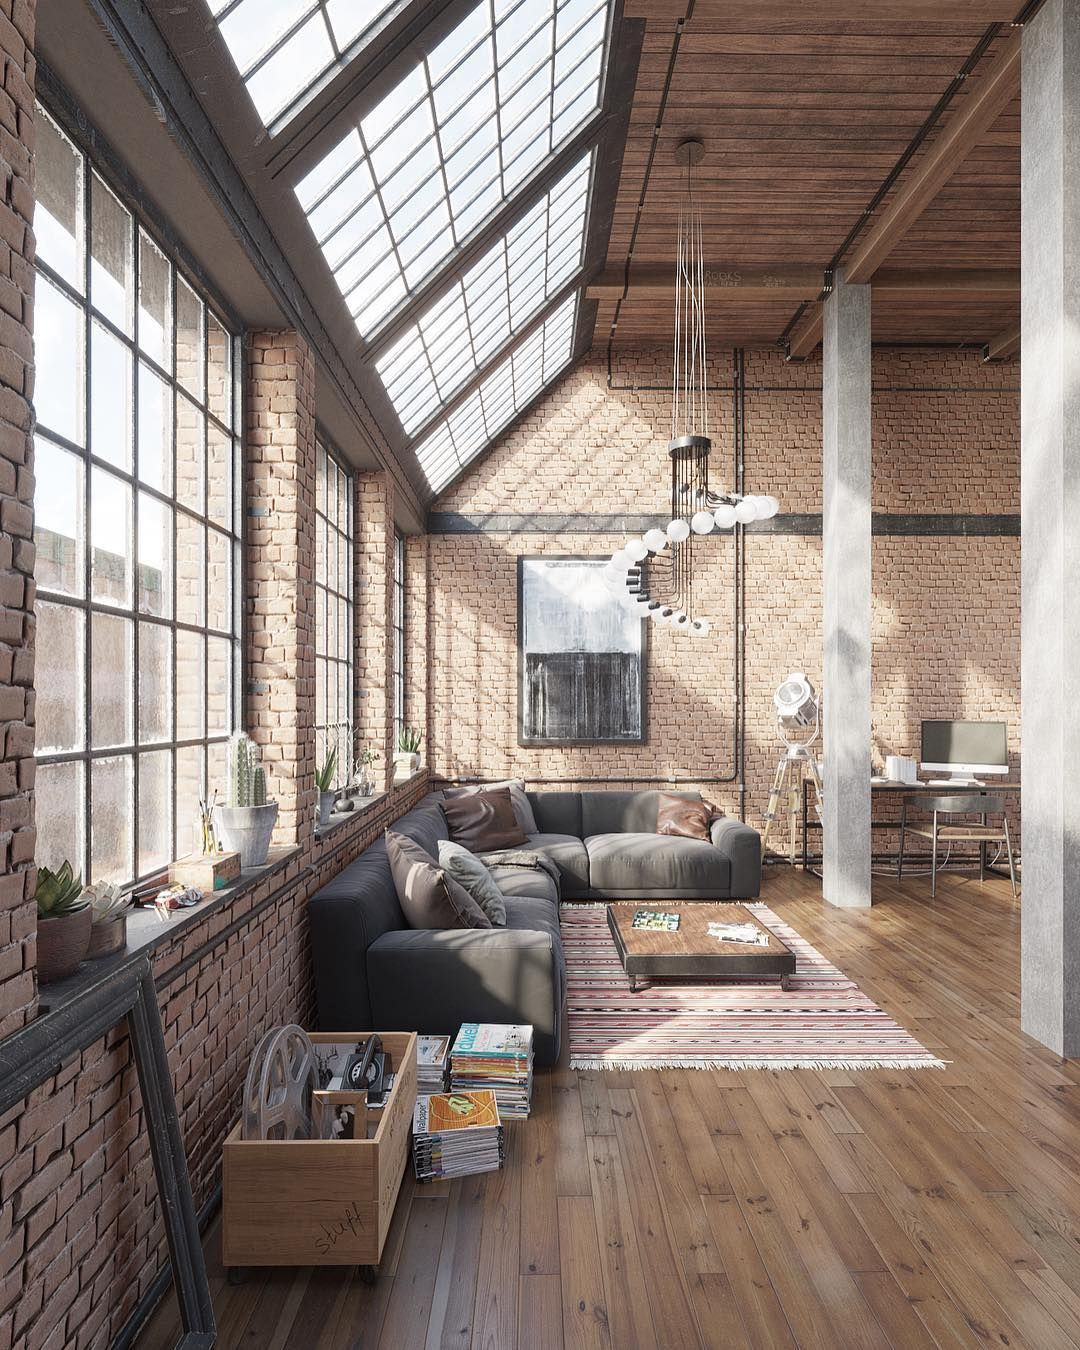 Industrial Loft: The Industrial Loft Design That Is Going To Rock Your